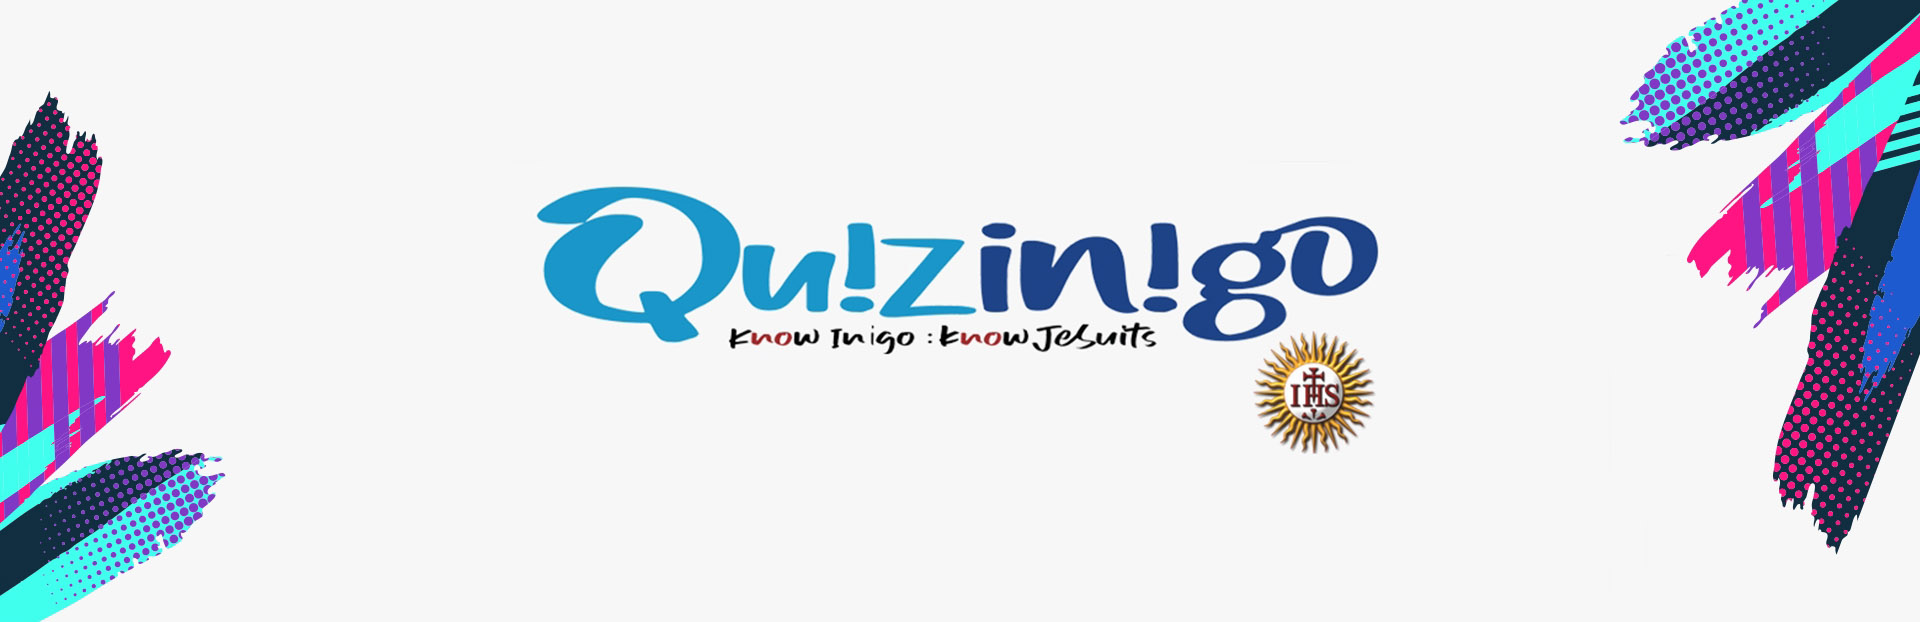 """QUIZINIGO 2020"", a Global Ignatian Online Quiz from the Karnataka Province"